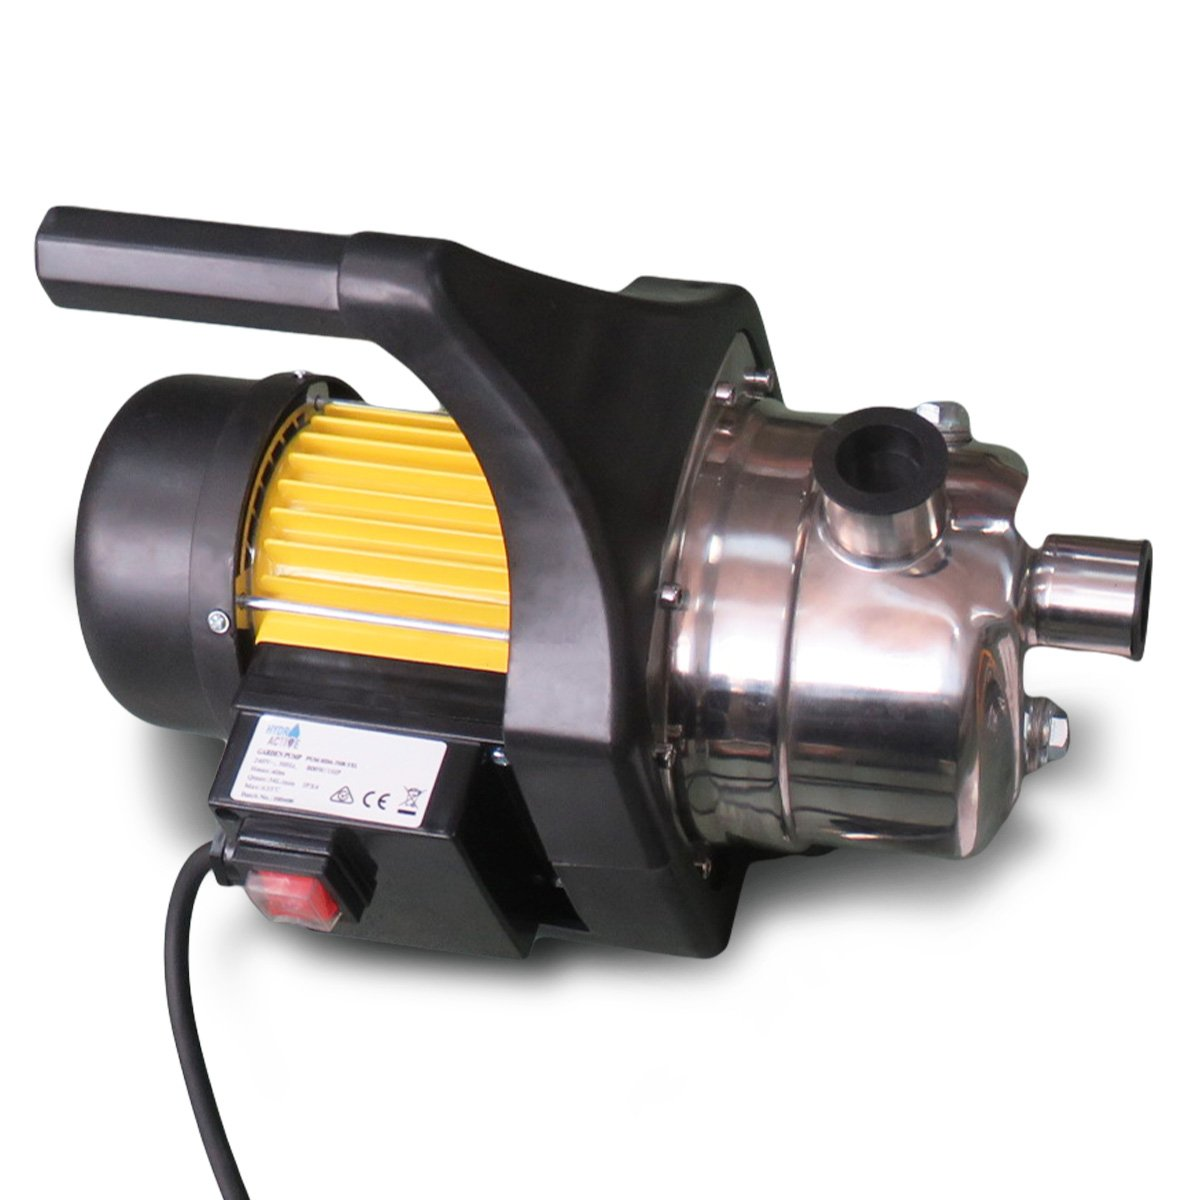 Hydro Active 800w Stainless Auto Water Pump 70B -Yellow